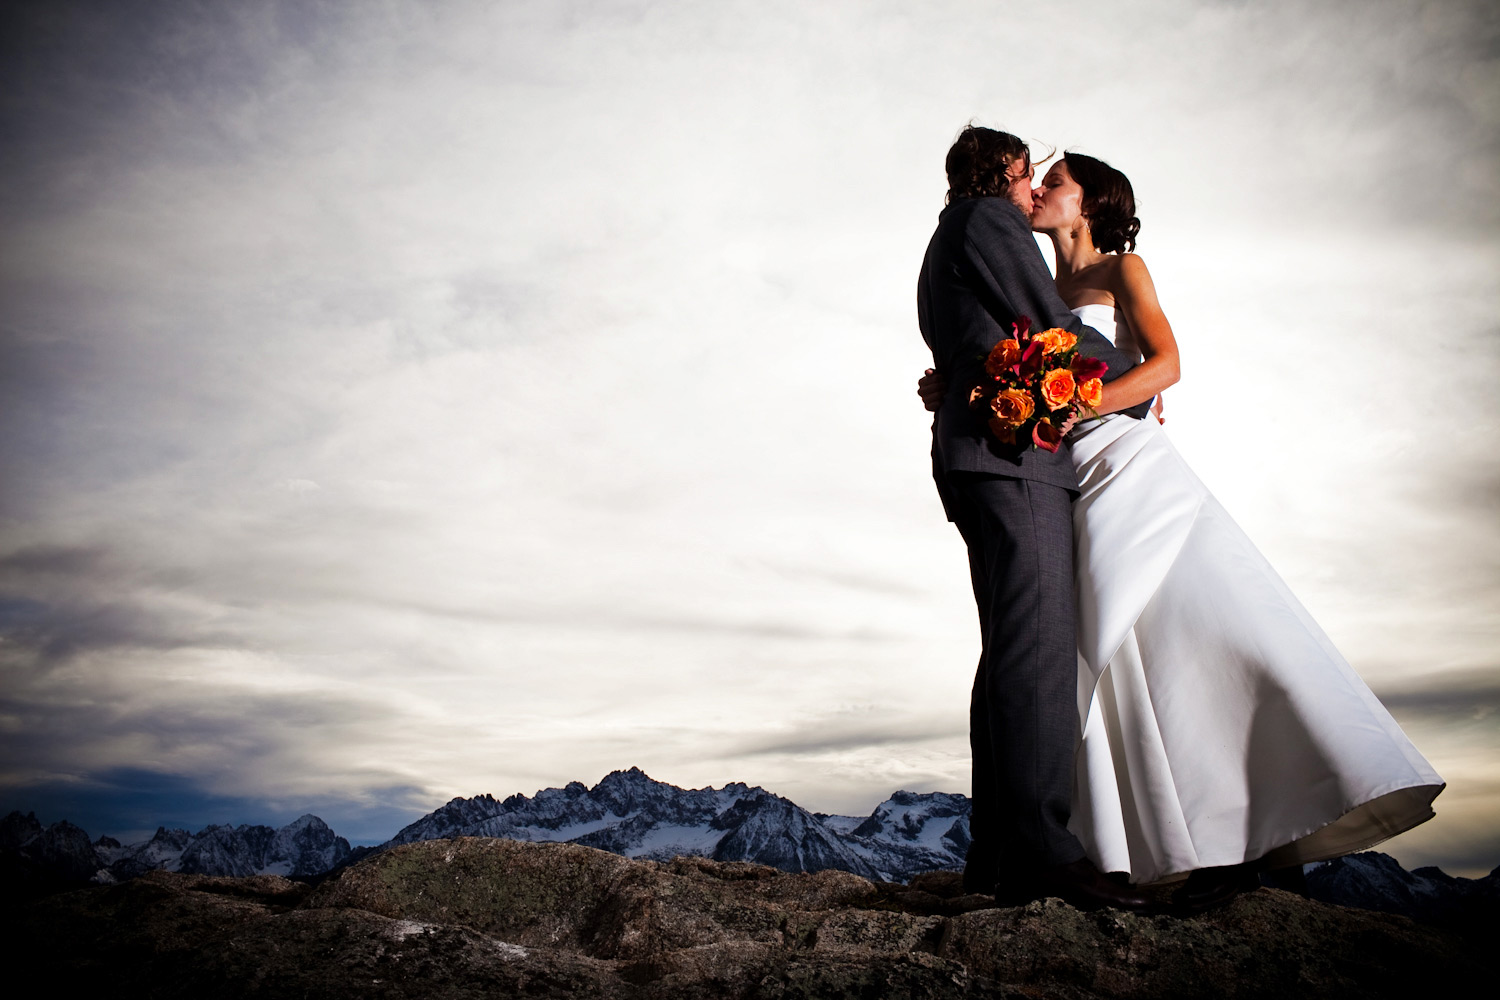 An off camera strobe lit wedding portrait of a bride and groom while atop a mountain near Stanley, Idaho.